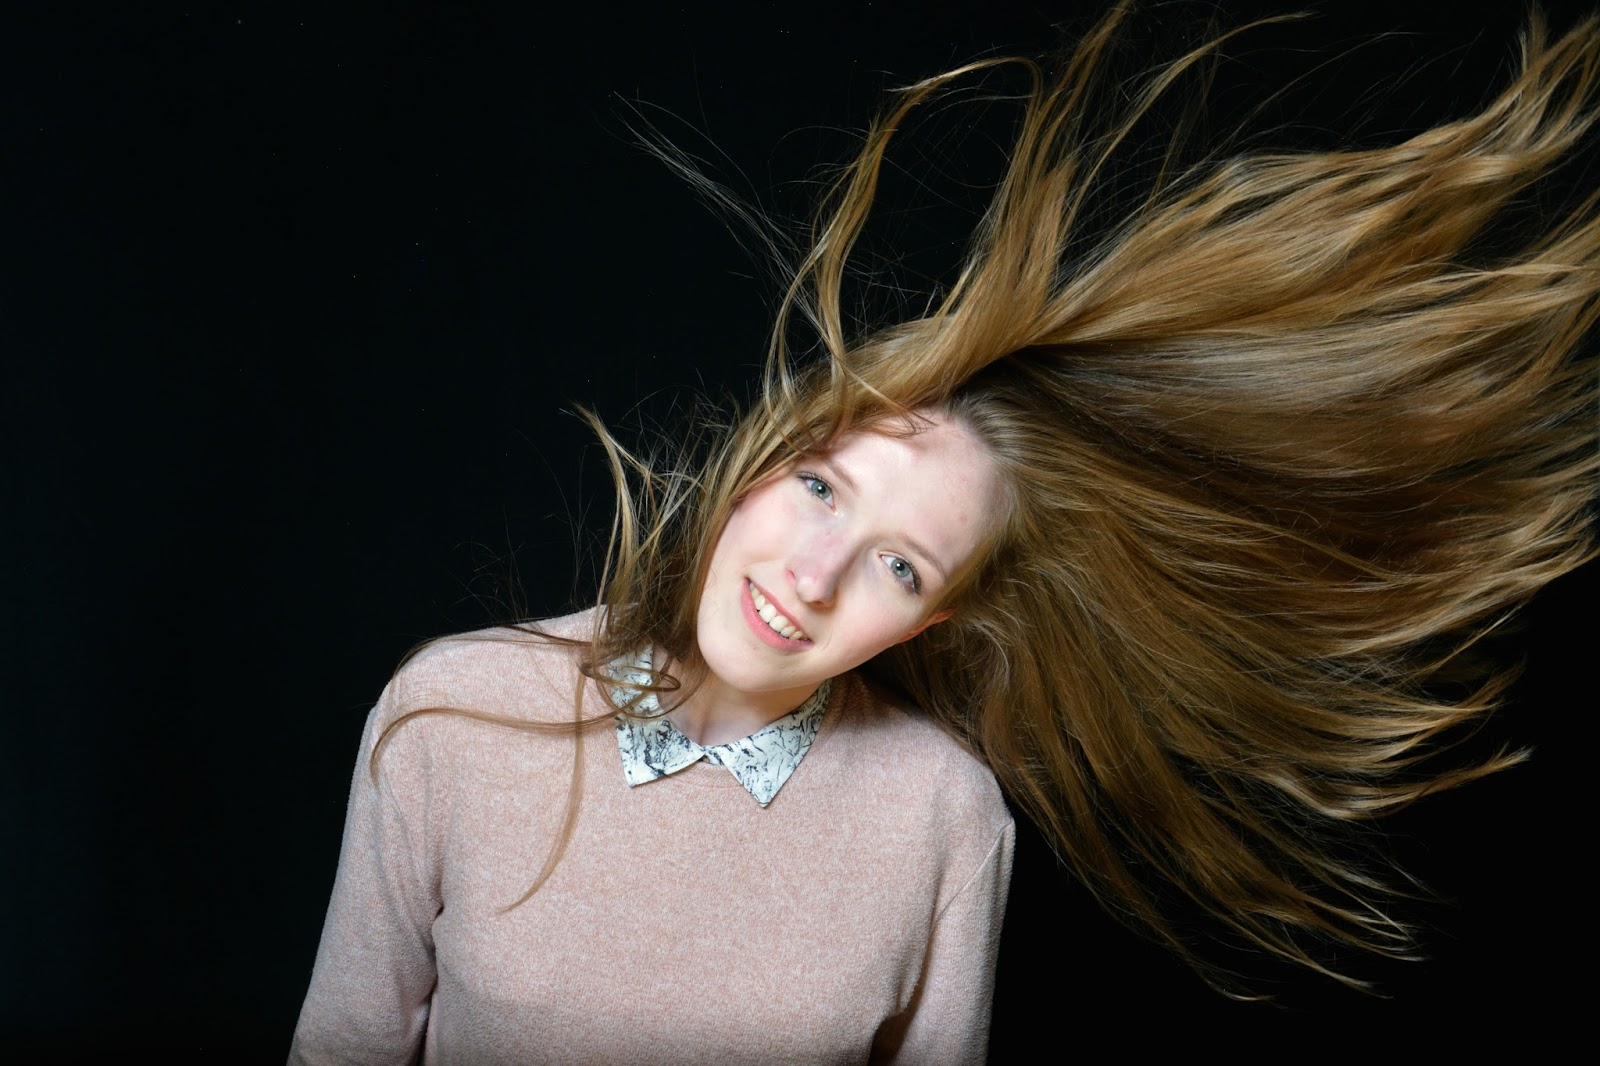 Portrait with flying hair